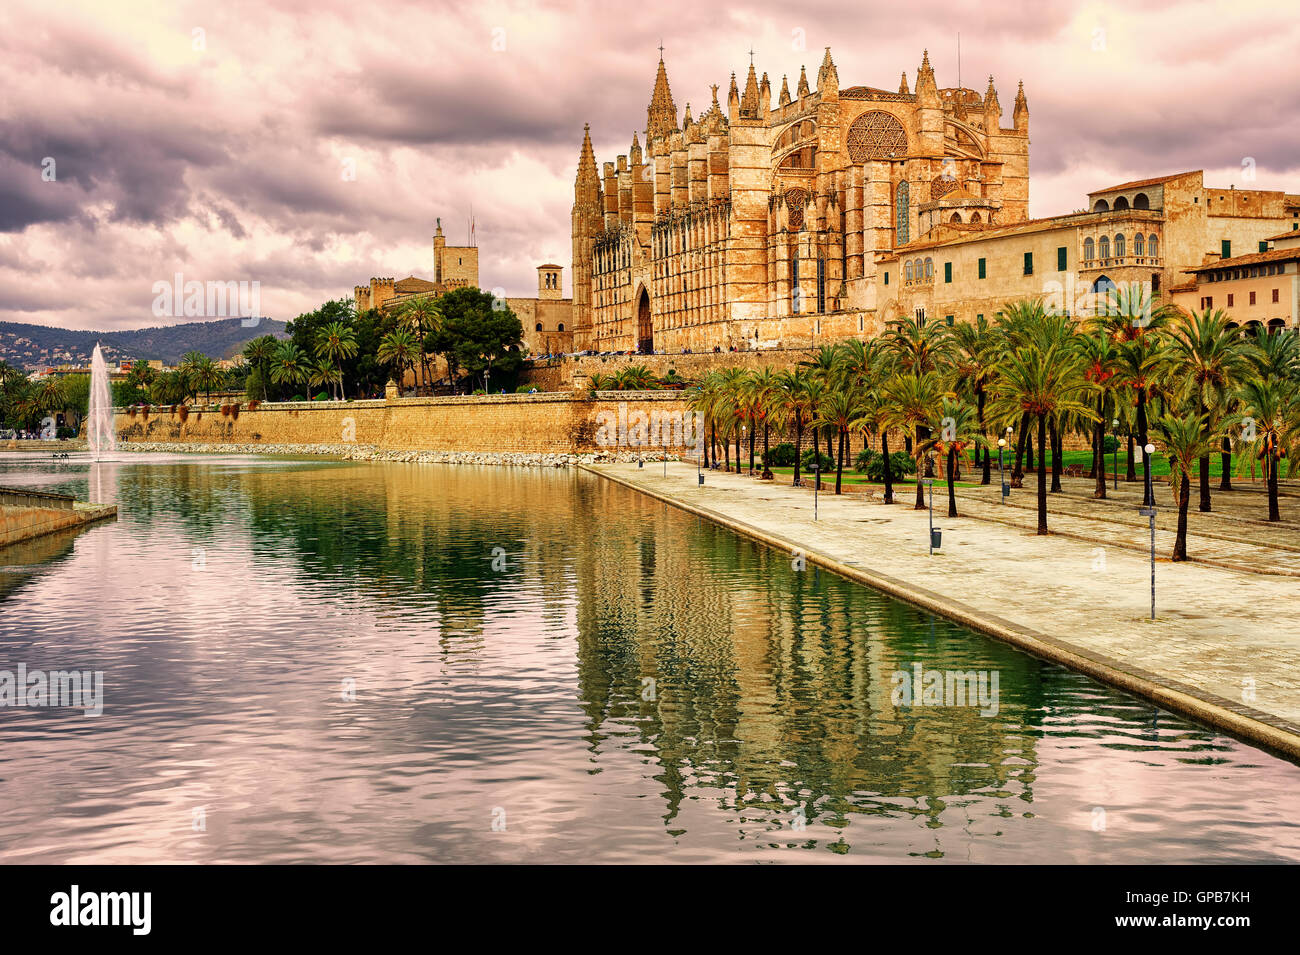 La Seu, the cathedral of Palma de Mallorca, reflecting in the water on sunset, Spain - Stock Image